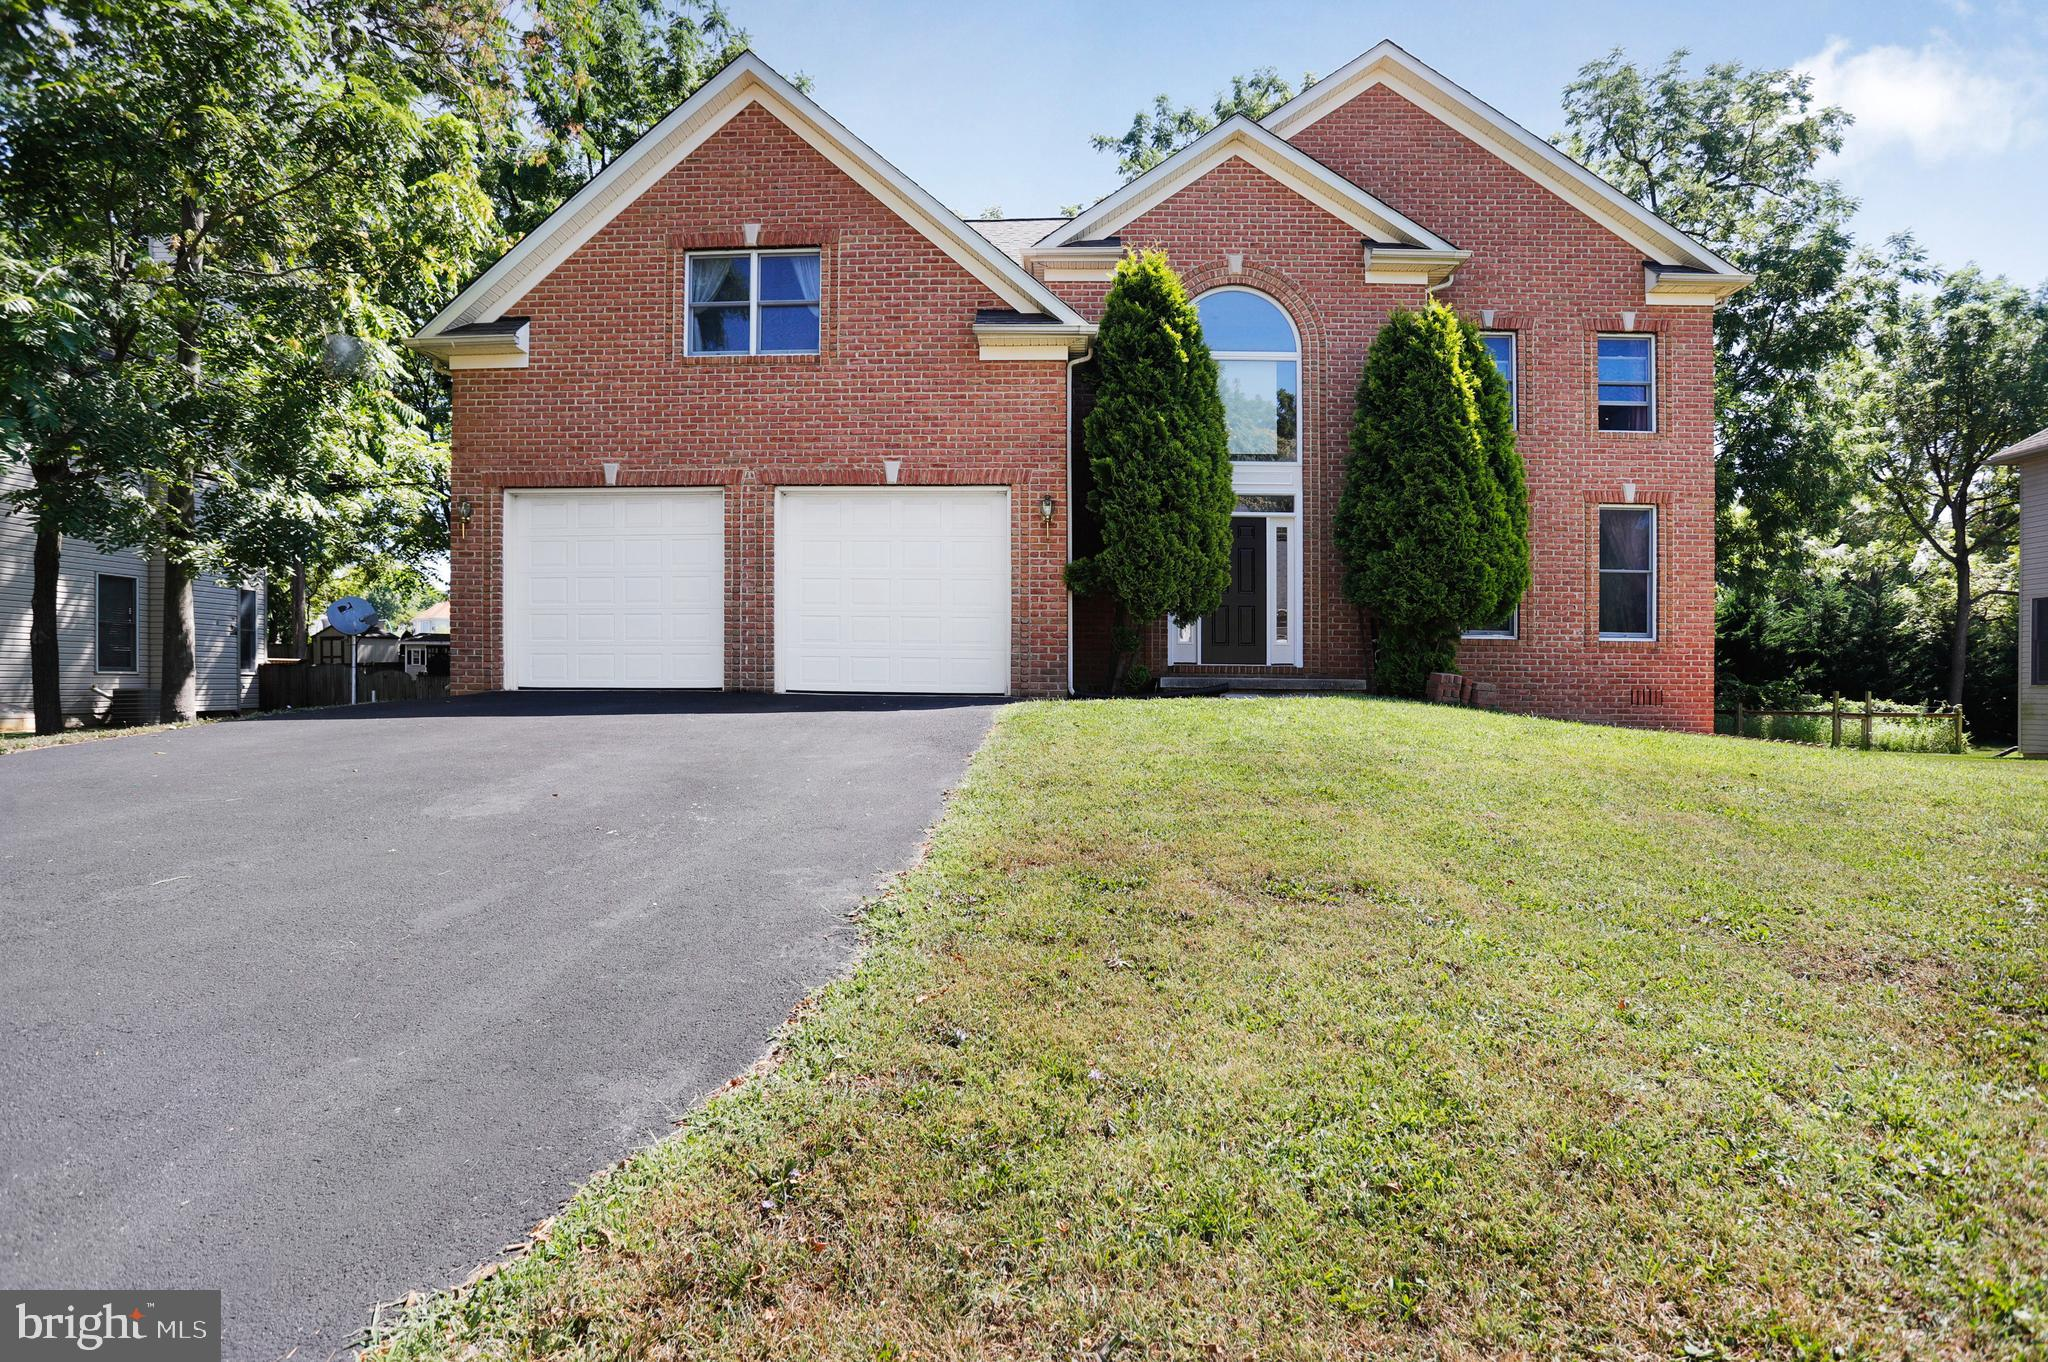 Welcome home! This  gorgeous brick colonial is located minutes from commuter highways, restaurants, and the community college. This home offers 4 large bedrooms, 2.5 baths, and an unfinished basement. Outside you'll find a two car garage, and a serene backyard. A deck is also located off the back the home for family and friend gatherings! Enjoy this lovely home with NO HOA.